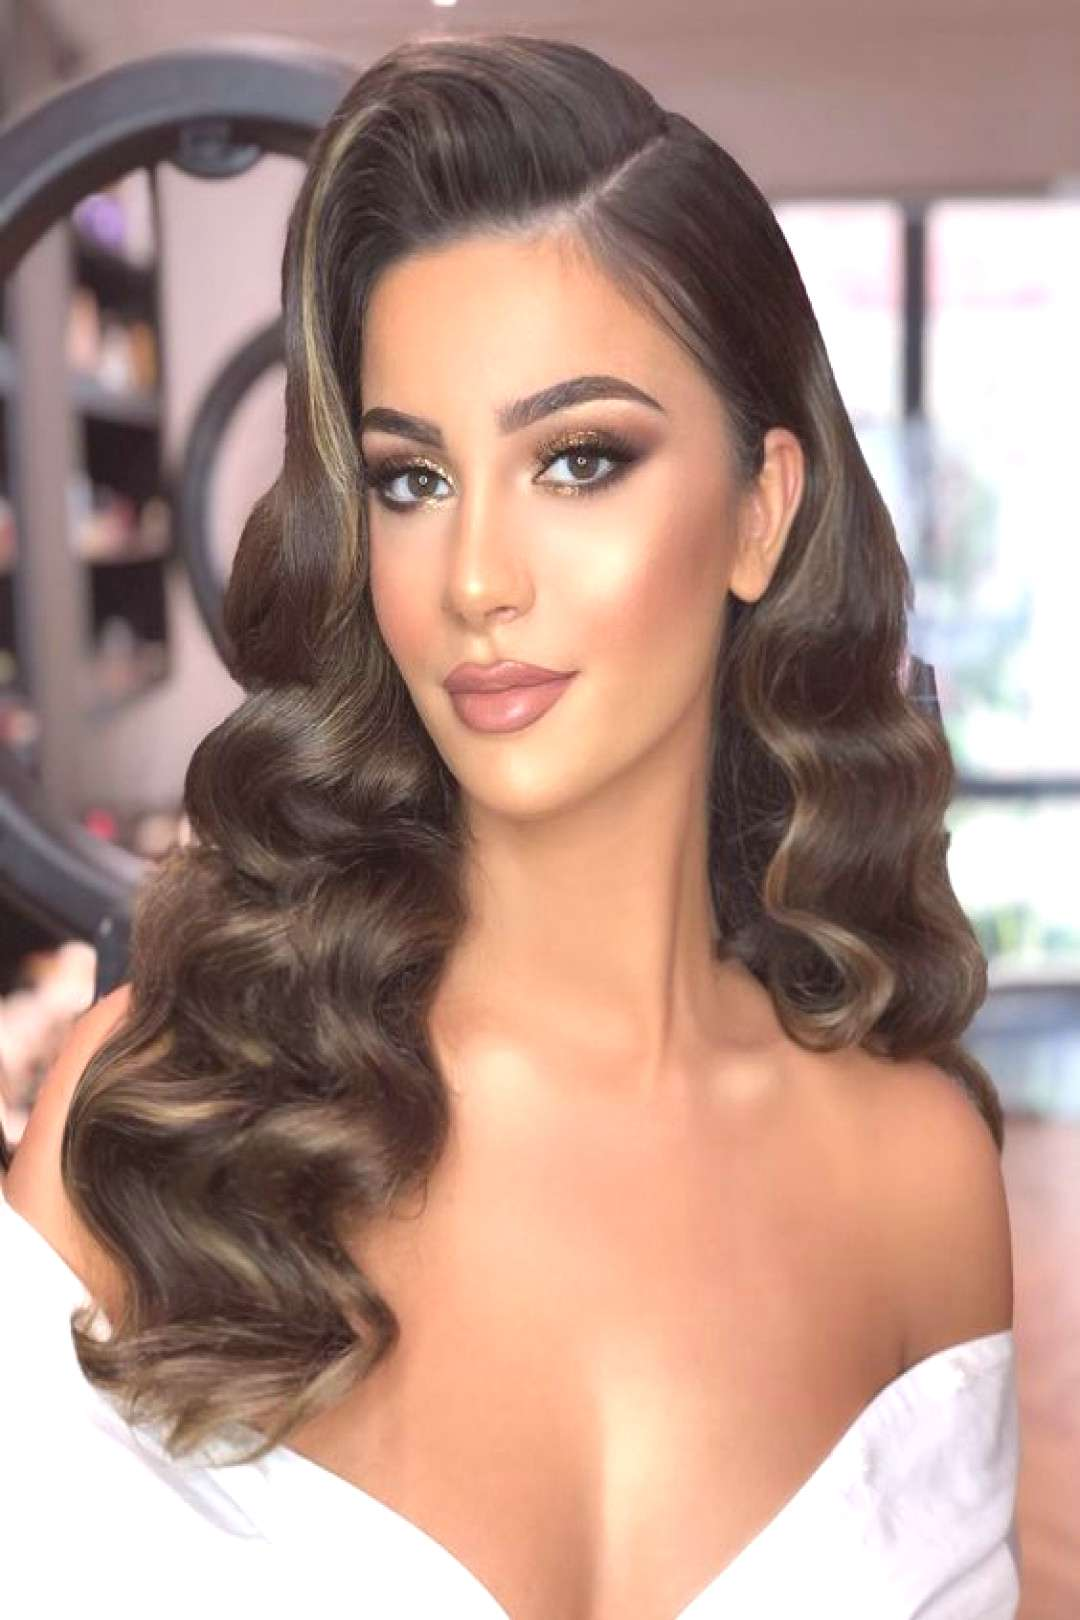 Retro Updo Hairstyles For Long Hair | Retro Updo Hairstyles retro updo hairstyles for long hair - r